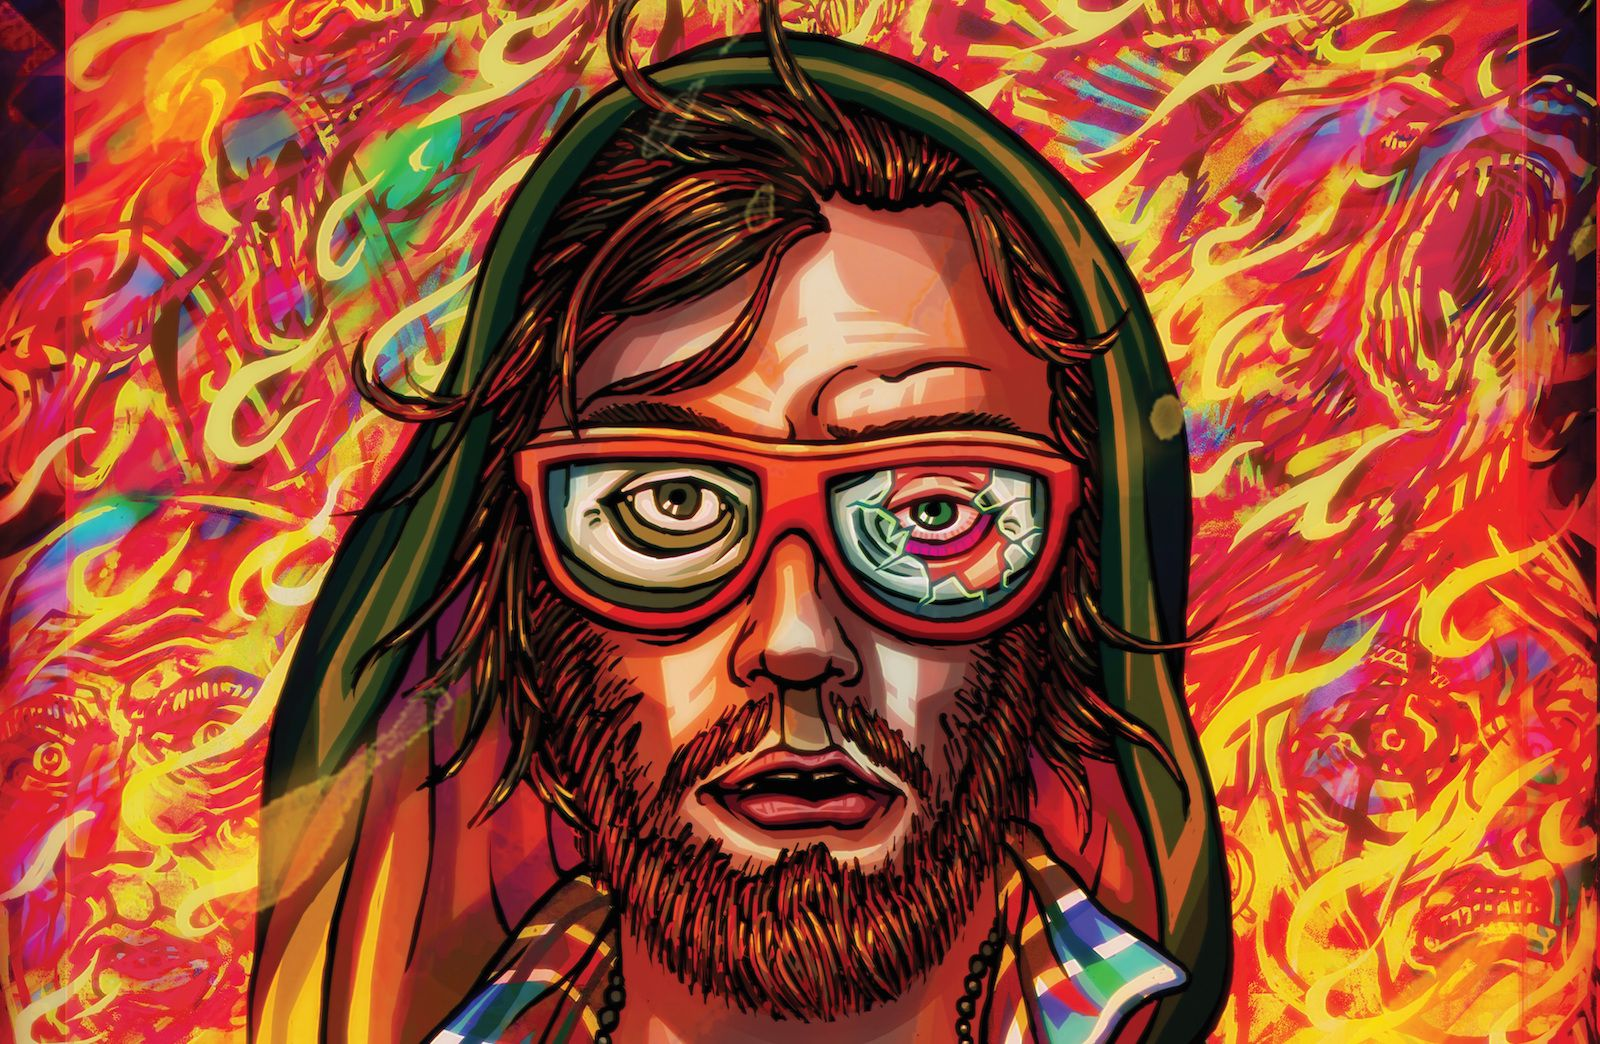 artwork from Hotline Miami 2 of a bearded man wearing glasses with red frames on a fiery background